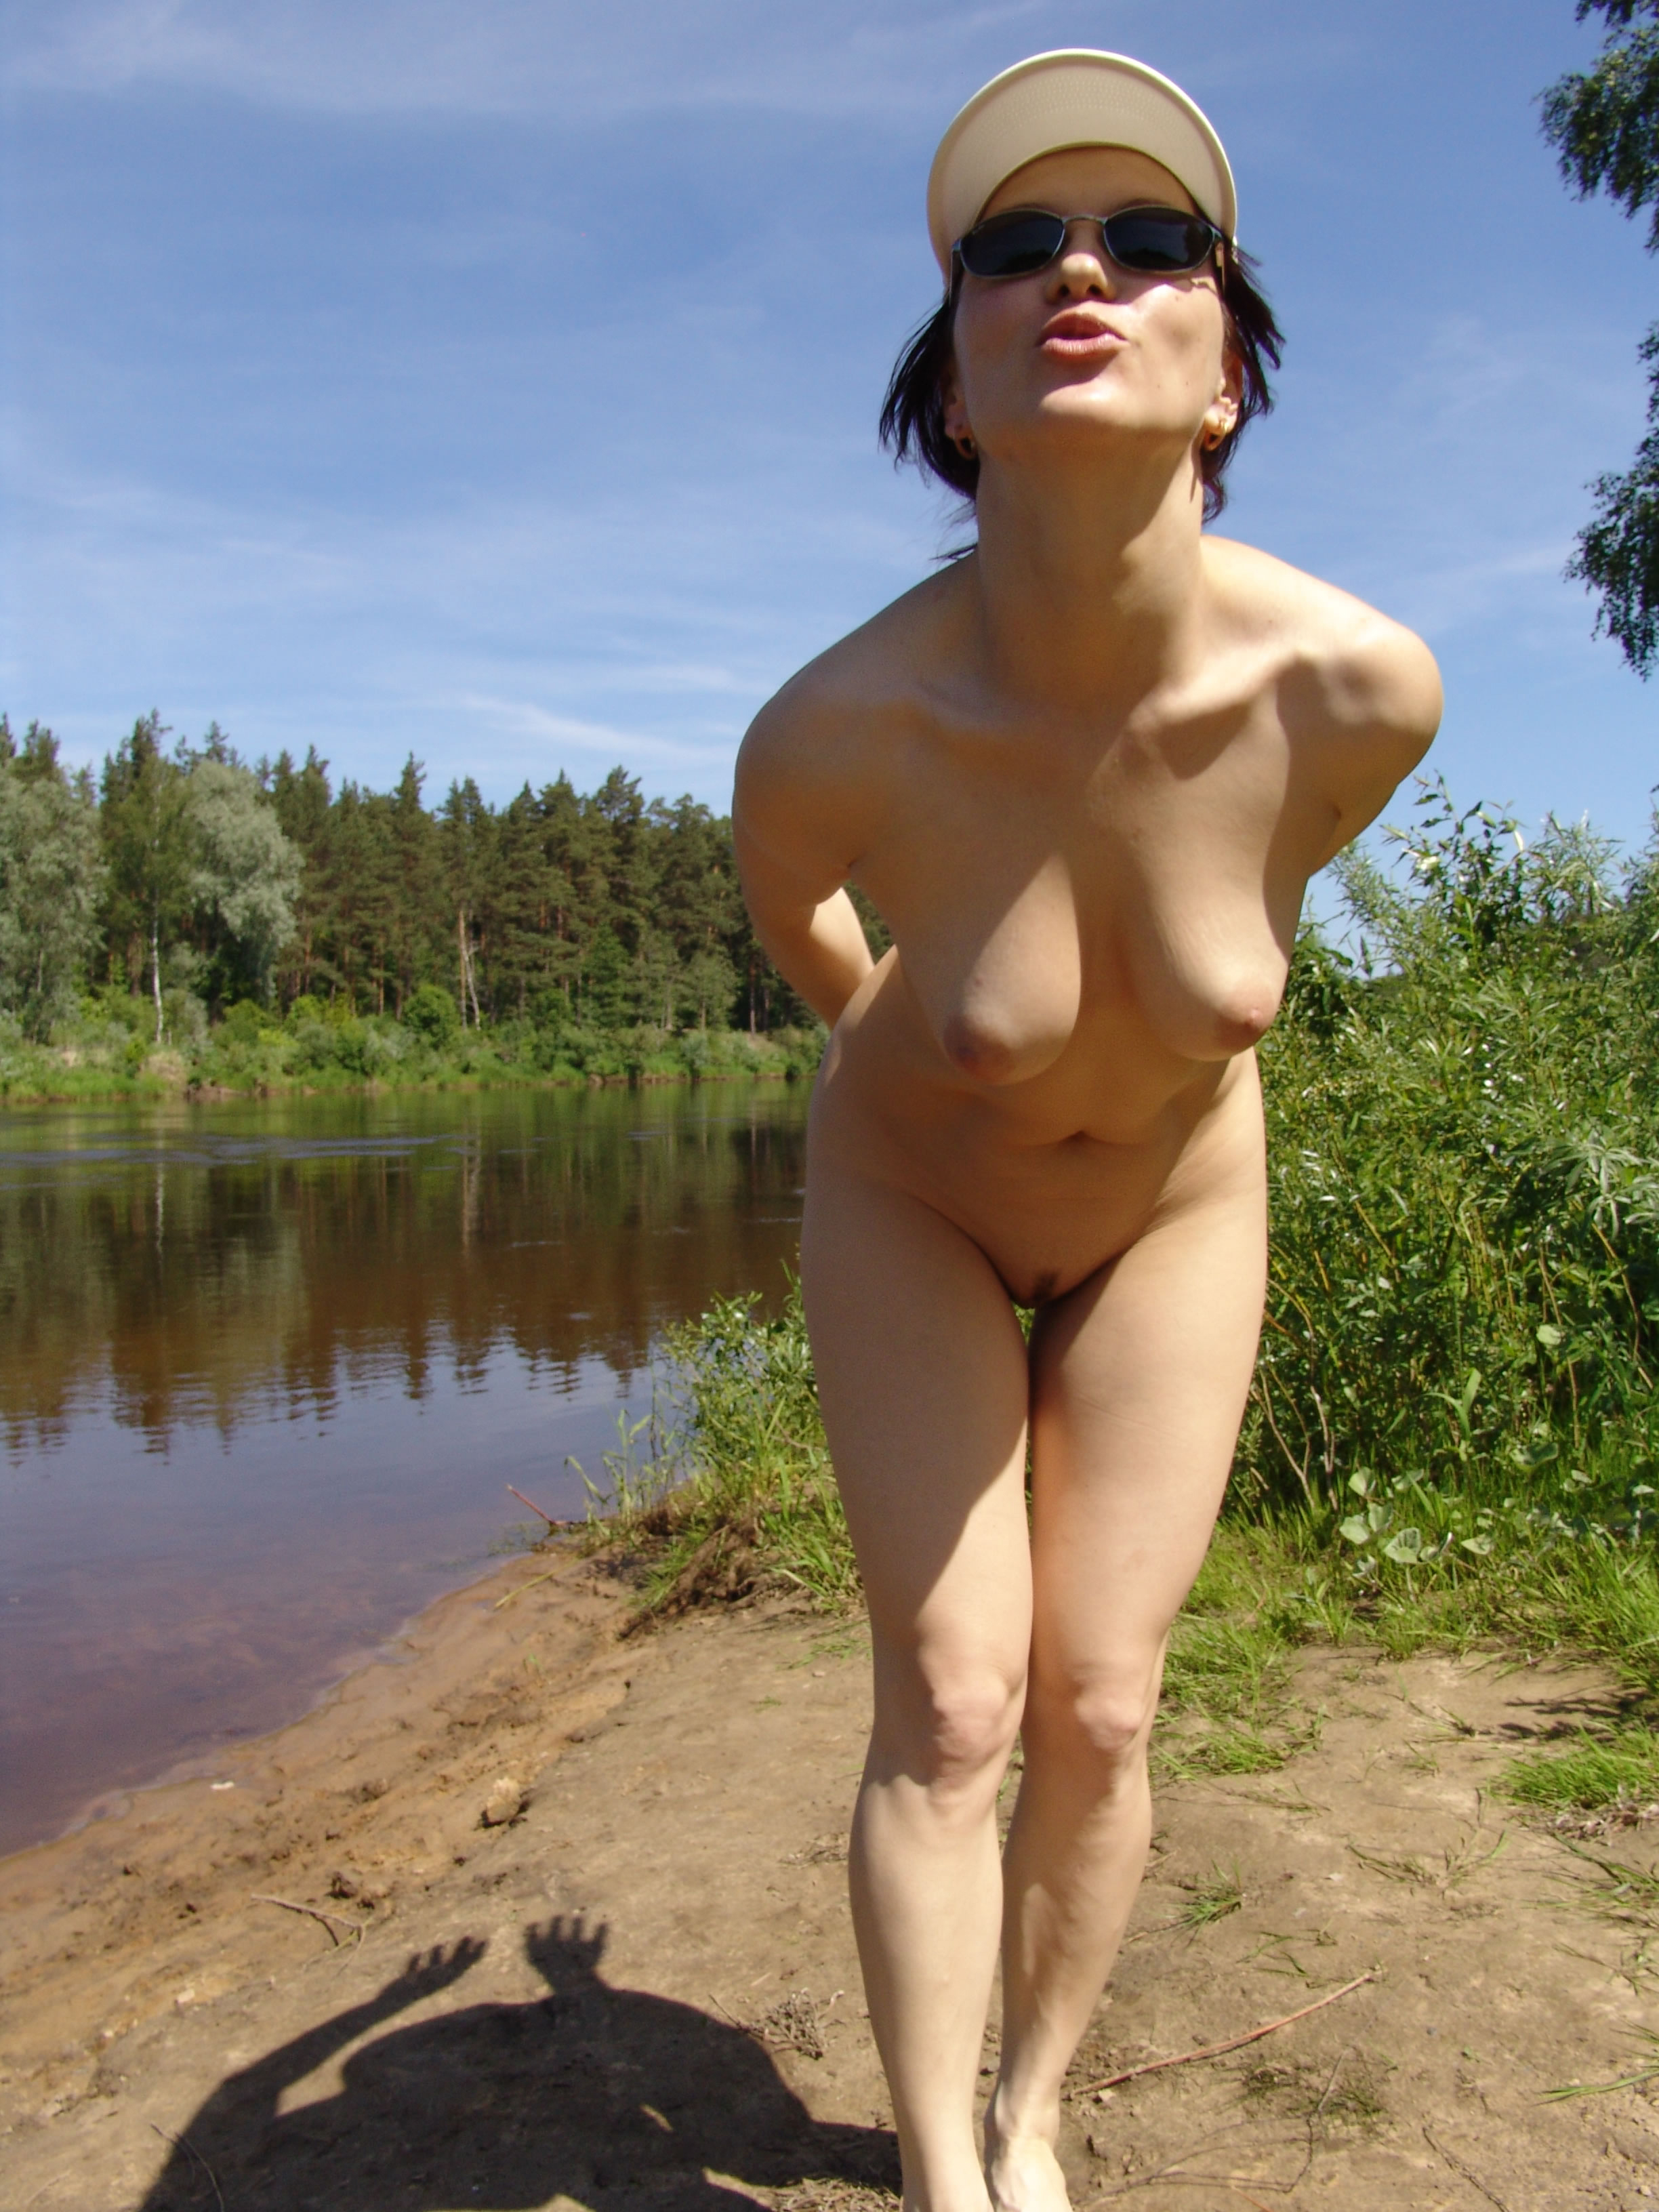 girls-nude-nake-amature-outdoor-thumbnail-ebony